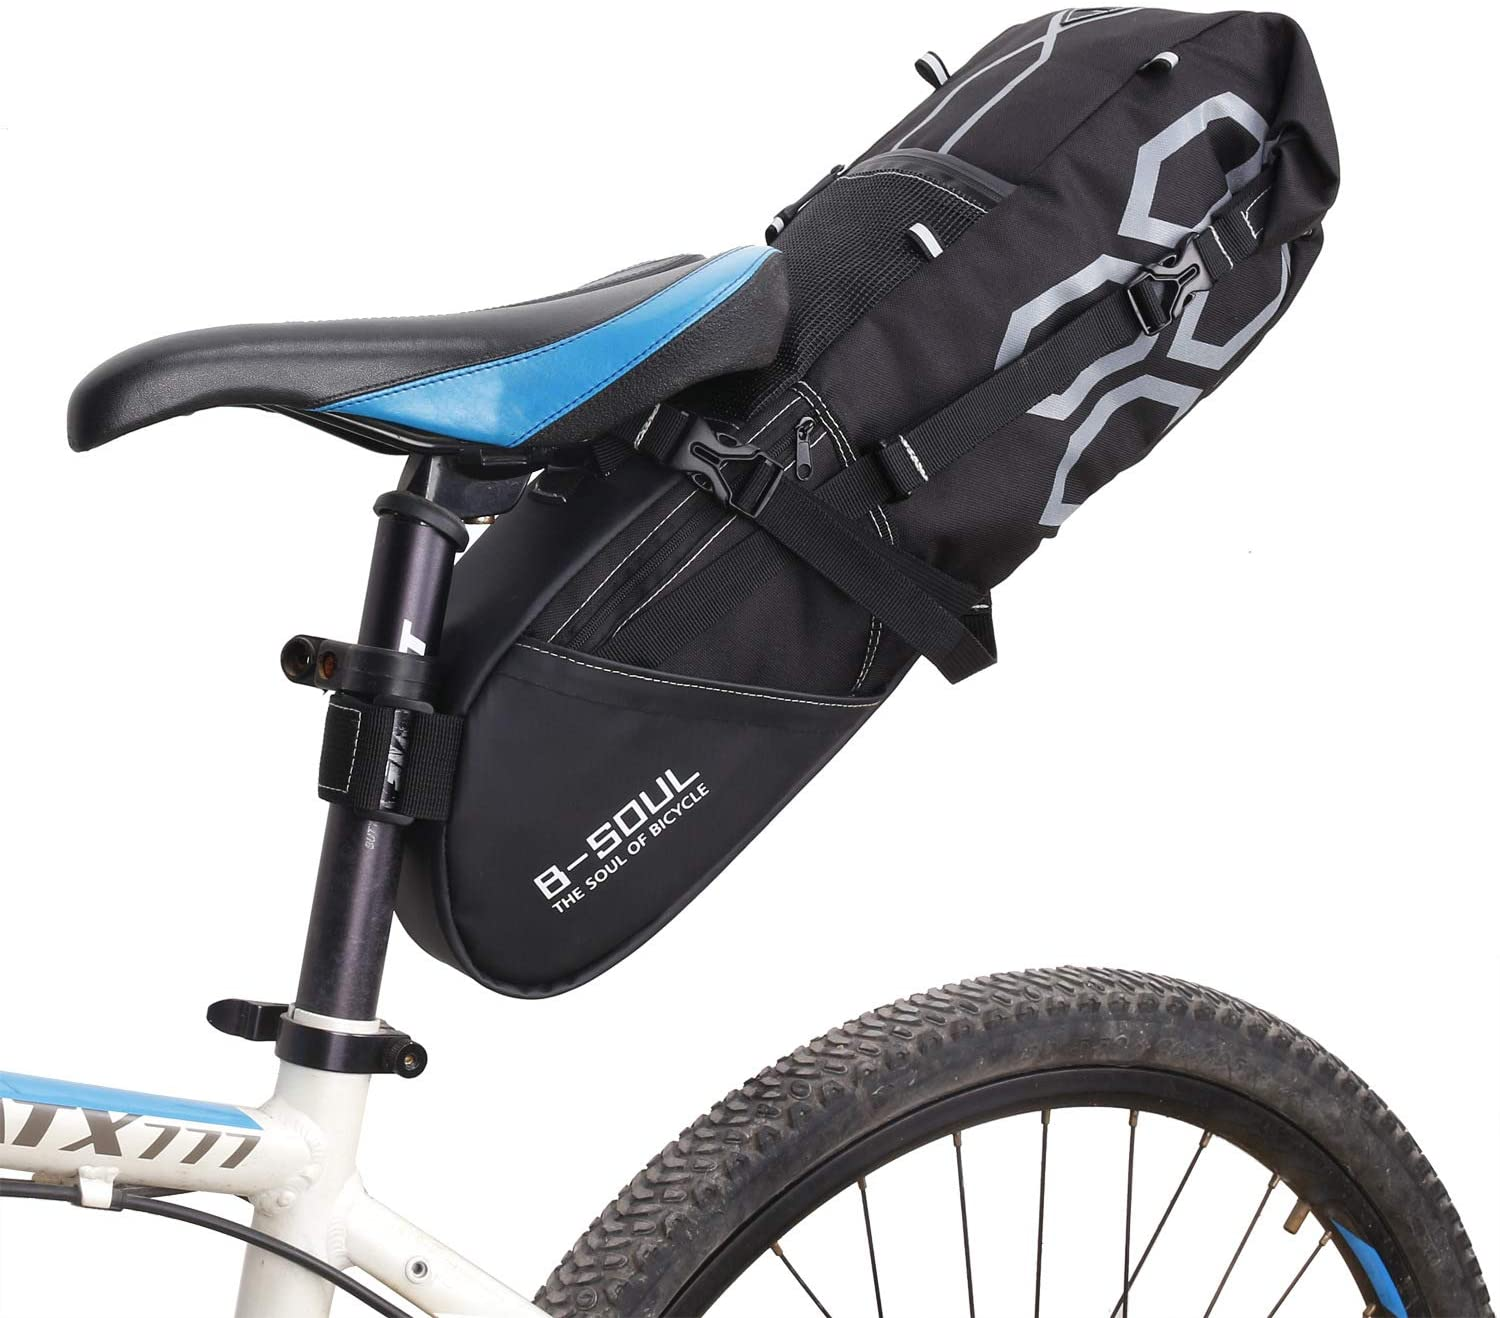 MR.CHAOS Bicycle Handlebar Bag Top Tube Bag Full Waterproof Saddle Pouch Storage Bag